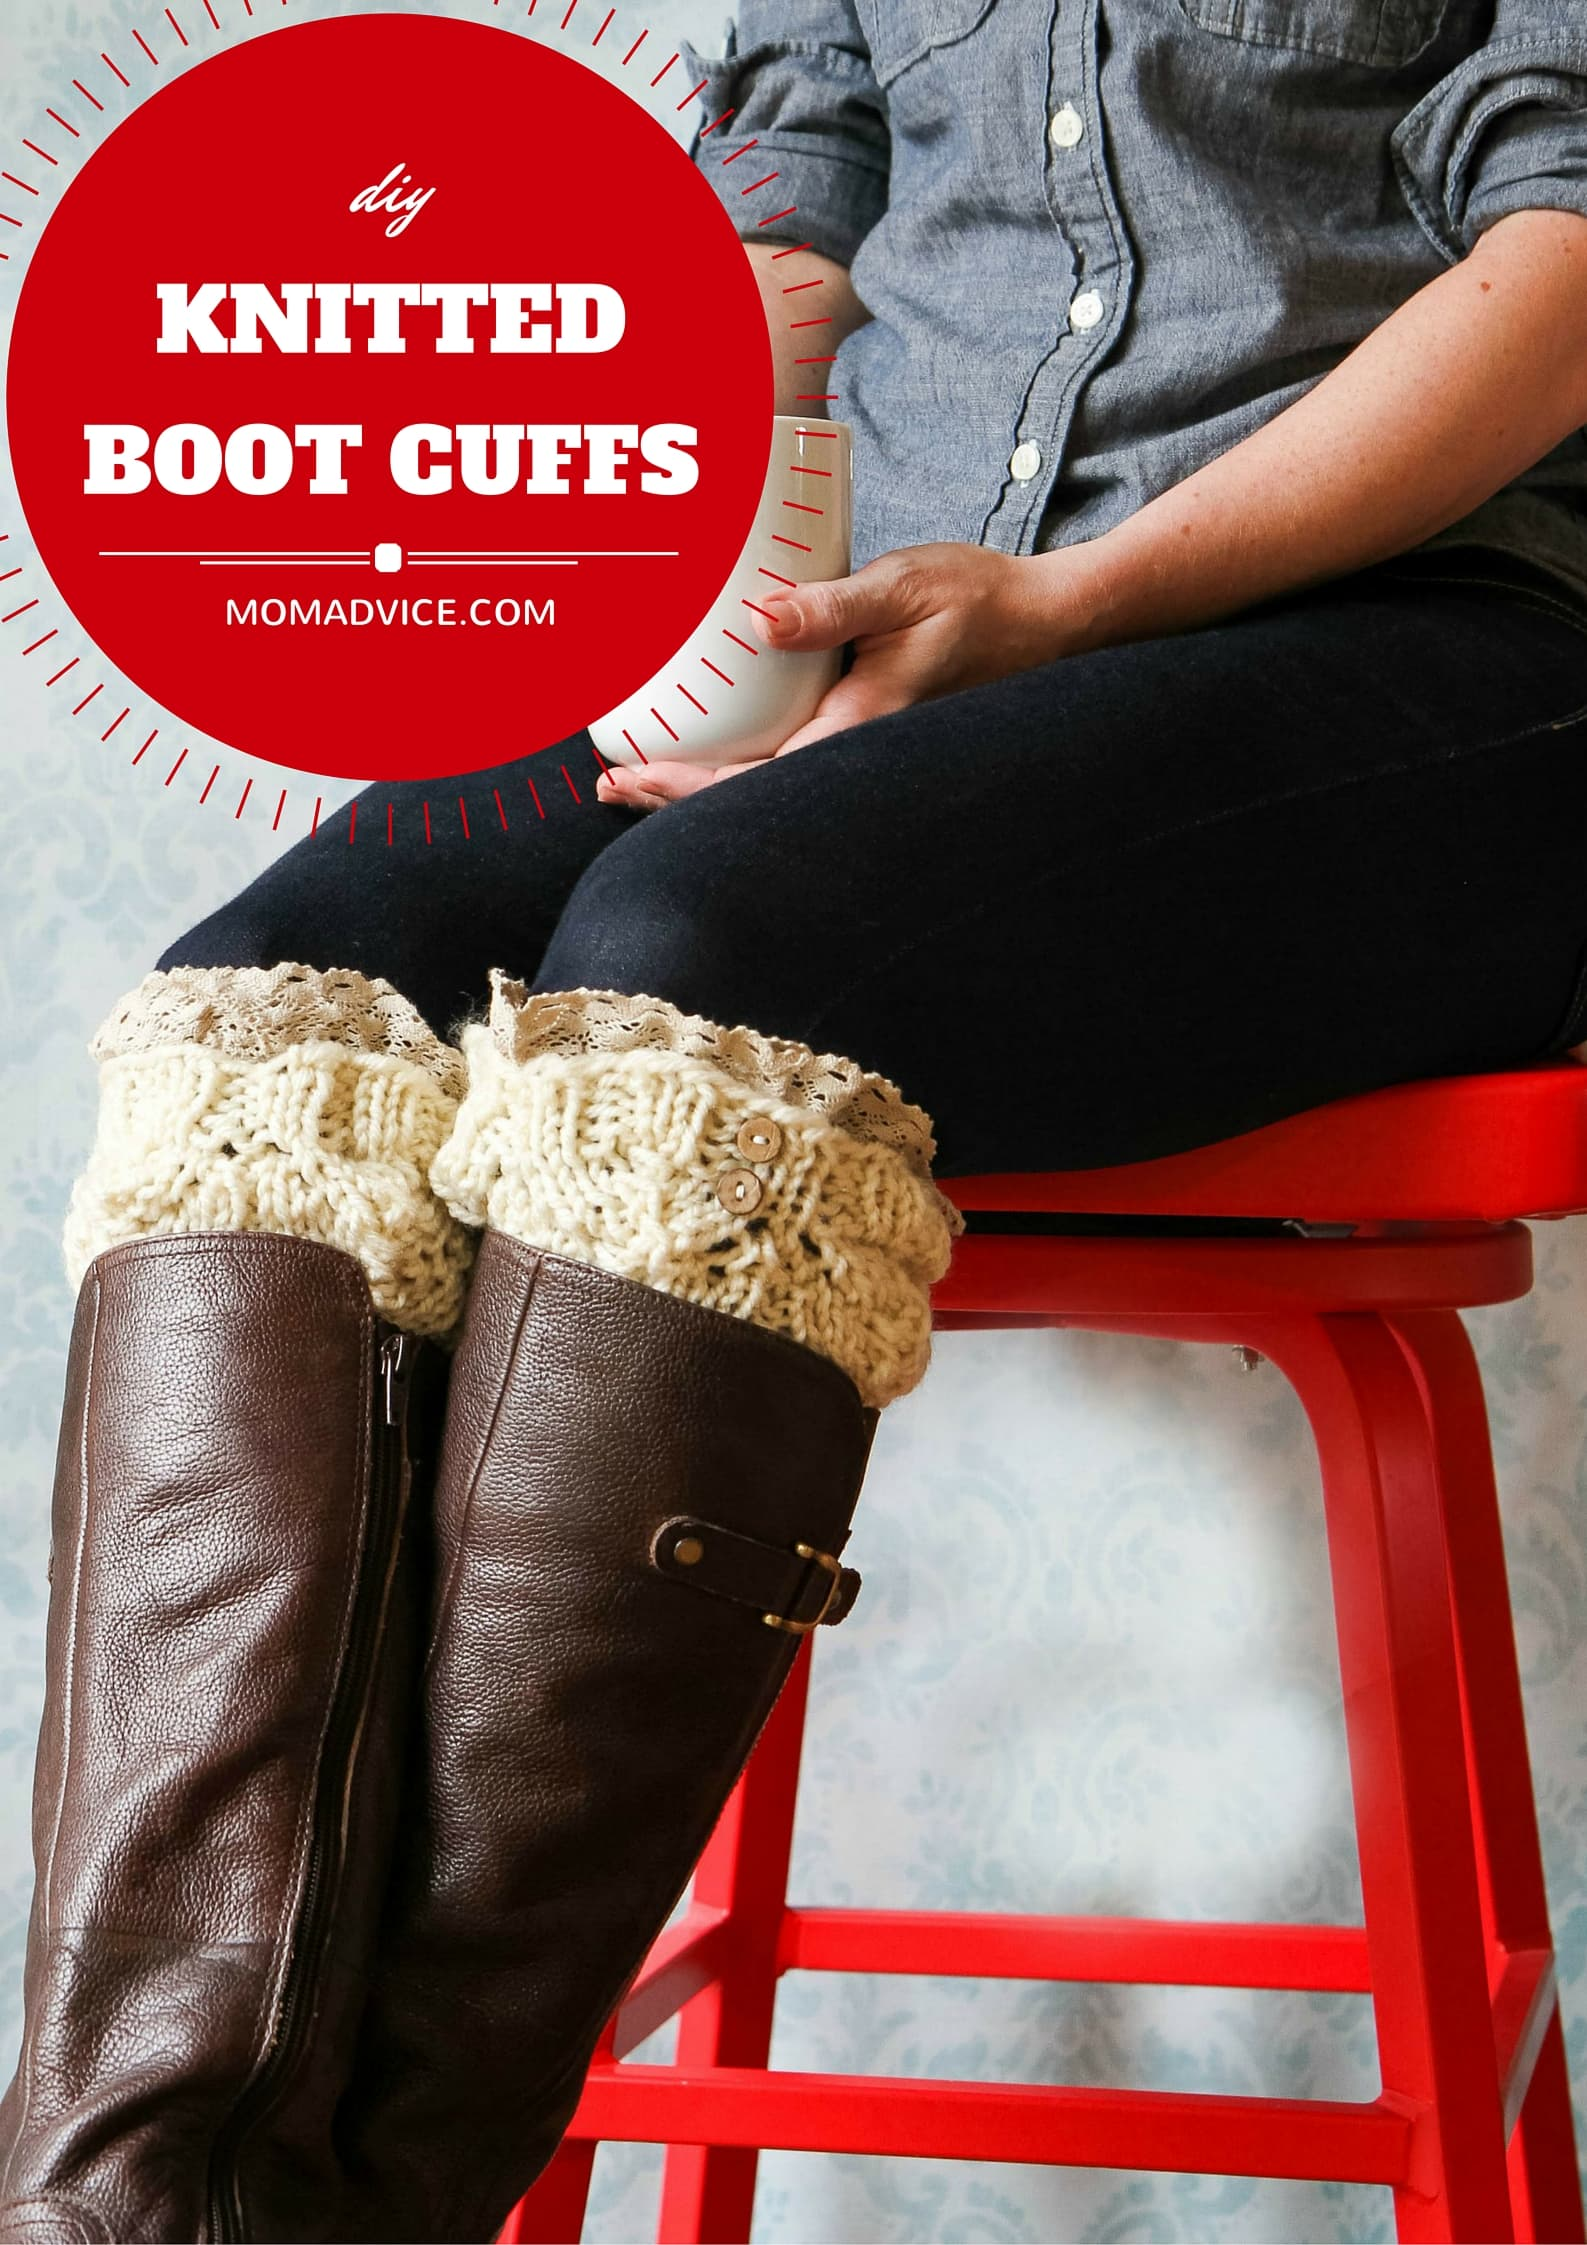 DIY Knitted Boot Cuffs from MomAdvice.com